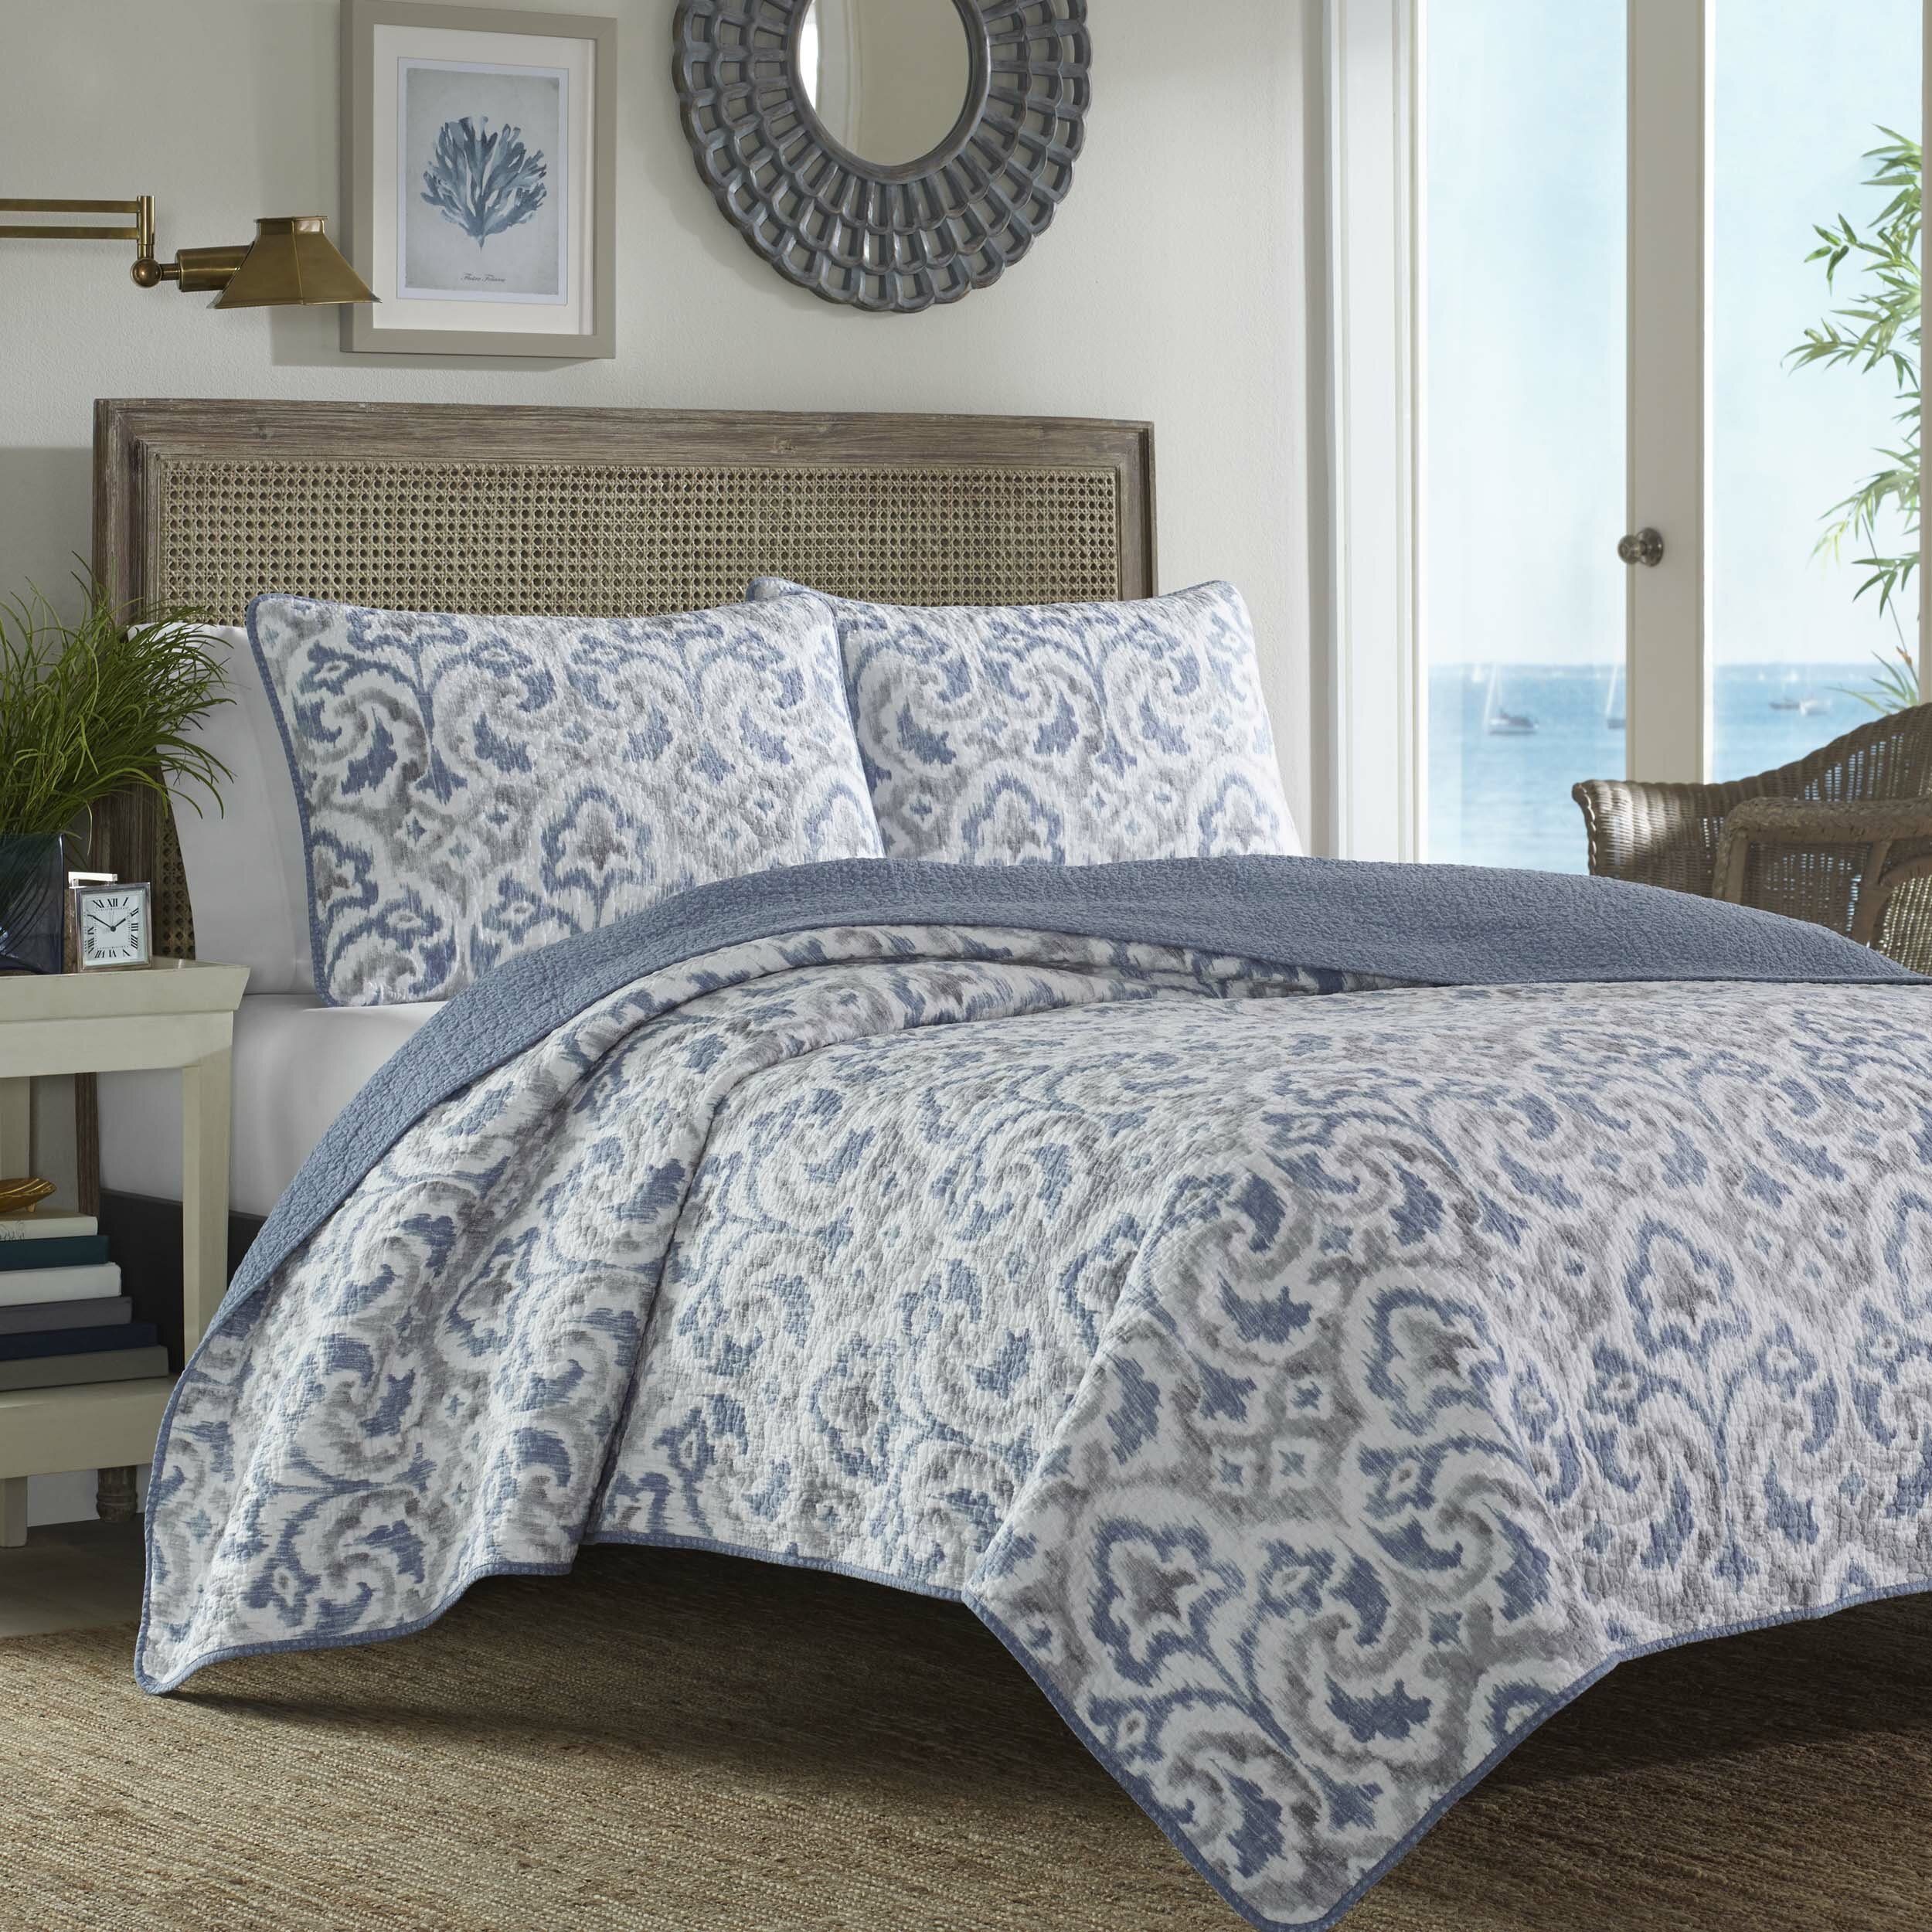 Bed sheet set with quilt - Tommy Bahama Bedding Cape Verde Reversible Quilt Set